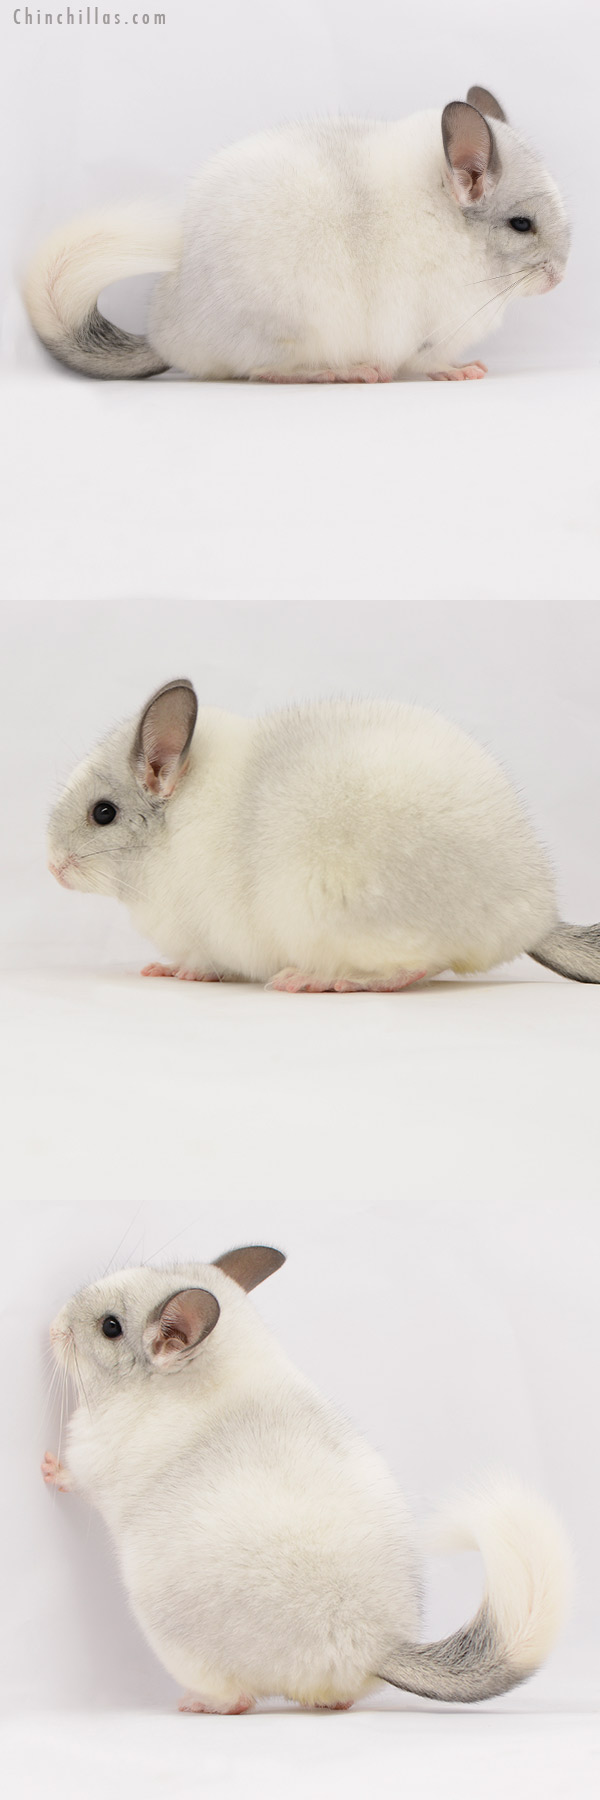 20231 Blocky Premium Production Quality White Mosaic Female Chinchilla